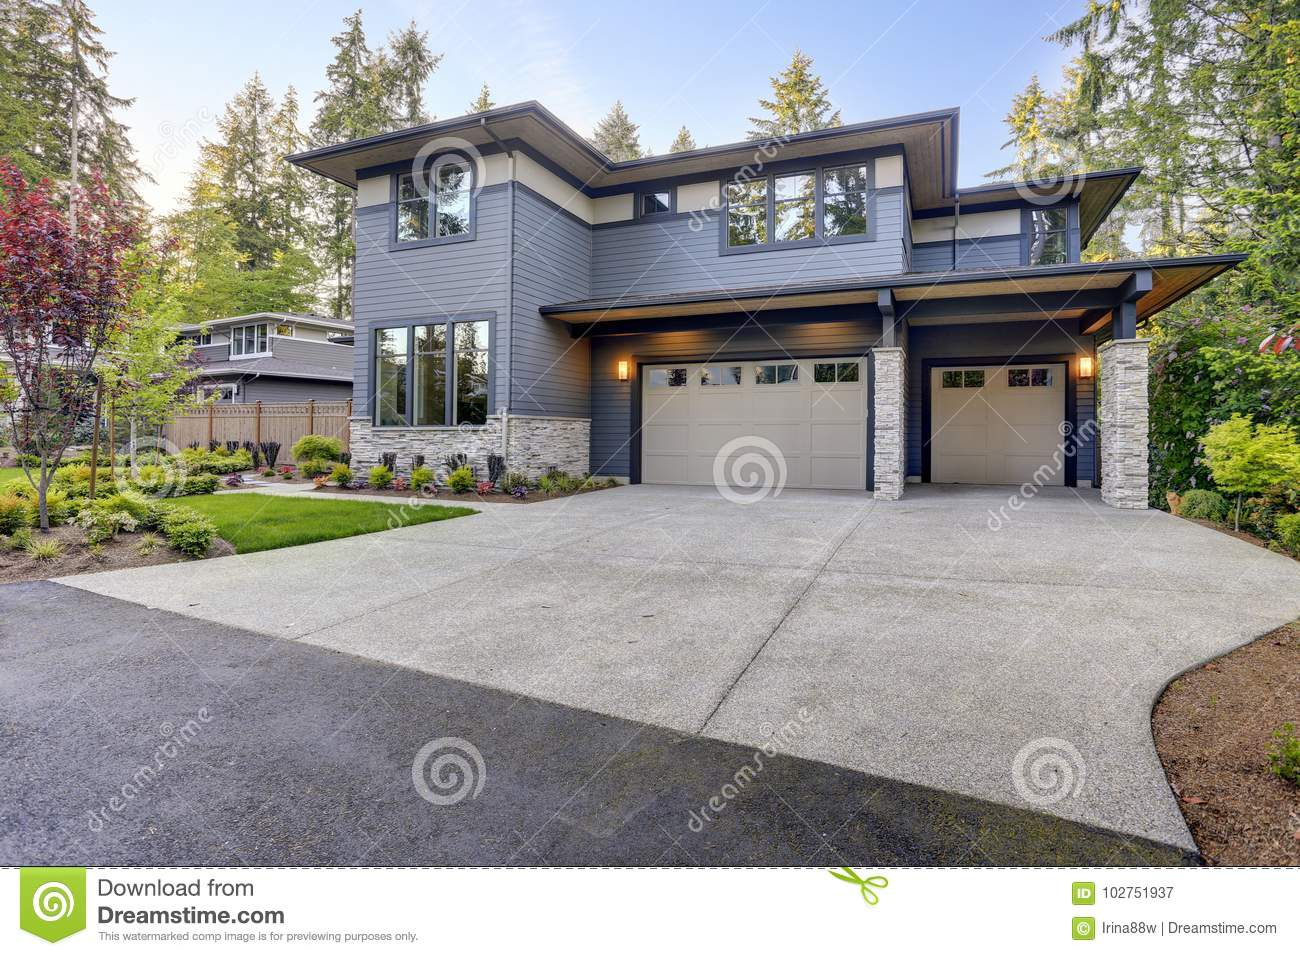 New Construction Home With Wood And Stone Siding Stock Image Image